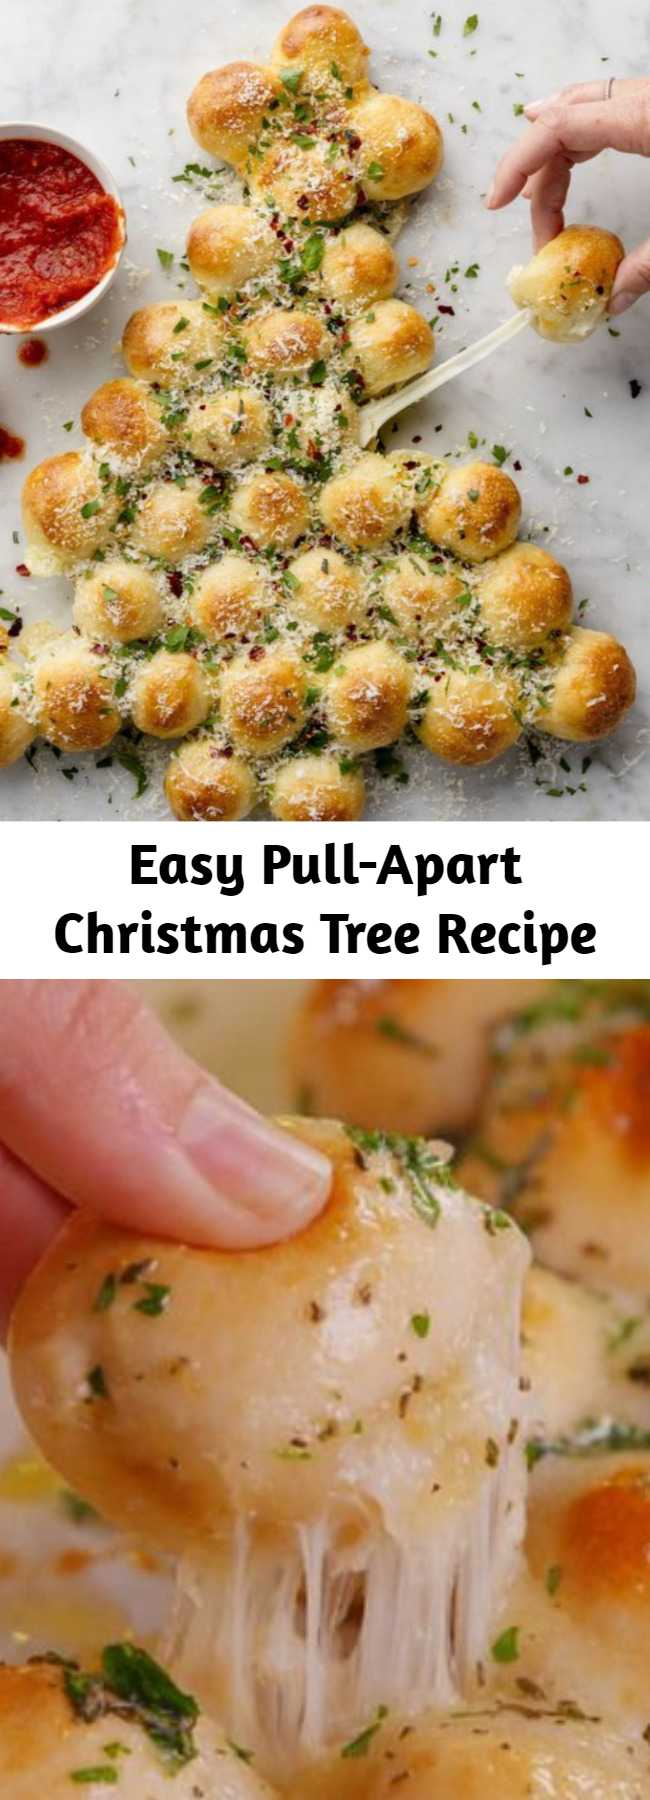 Easy Pull-Apart Christmas Tree Recipe - This cheesy Christmas tree is the app that gets demolished in seconds. #easy #cheesy #bread #appetizer #holiday #christmas #christmastree #cheese ##mozzarella #pizzadough #basil #herbs #fingerfoods